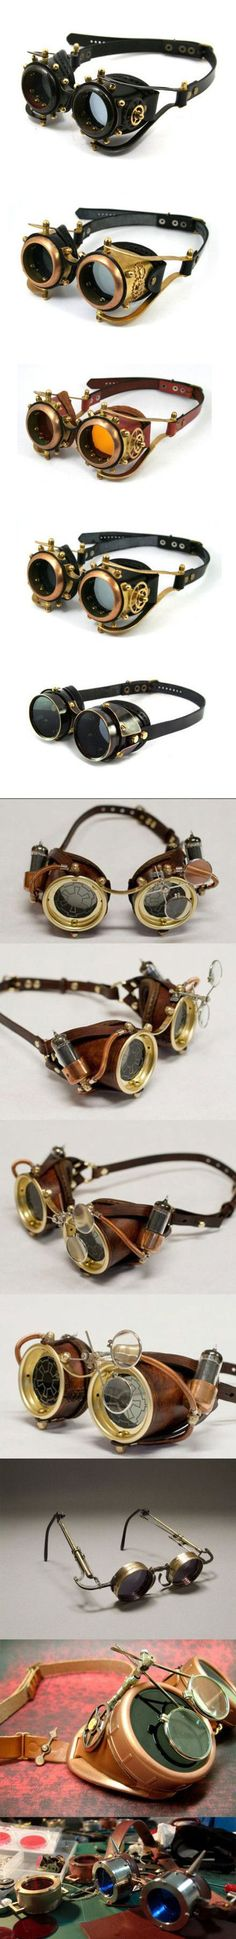 Examples of steampunk goggles and decorations